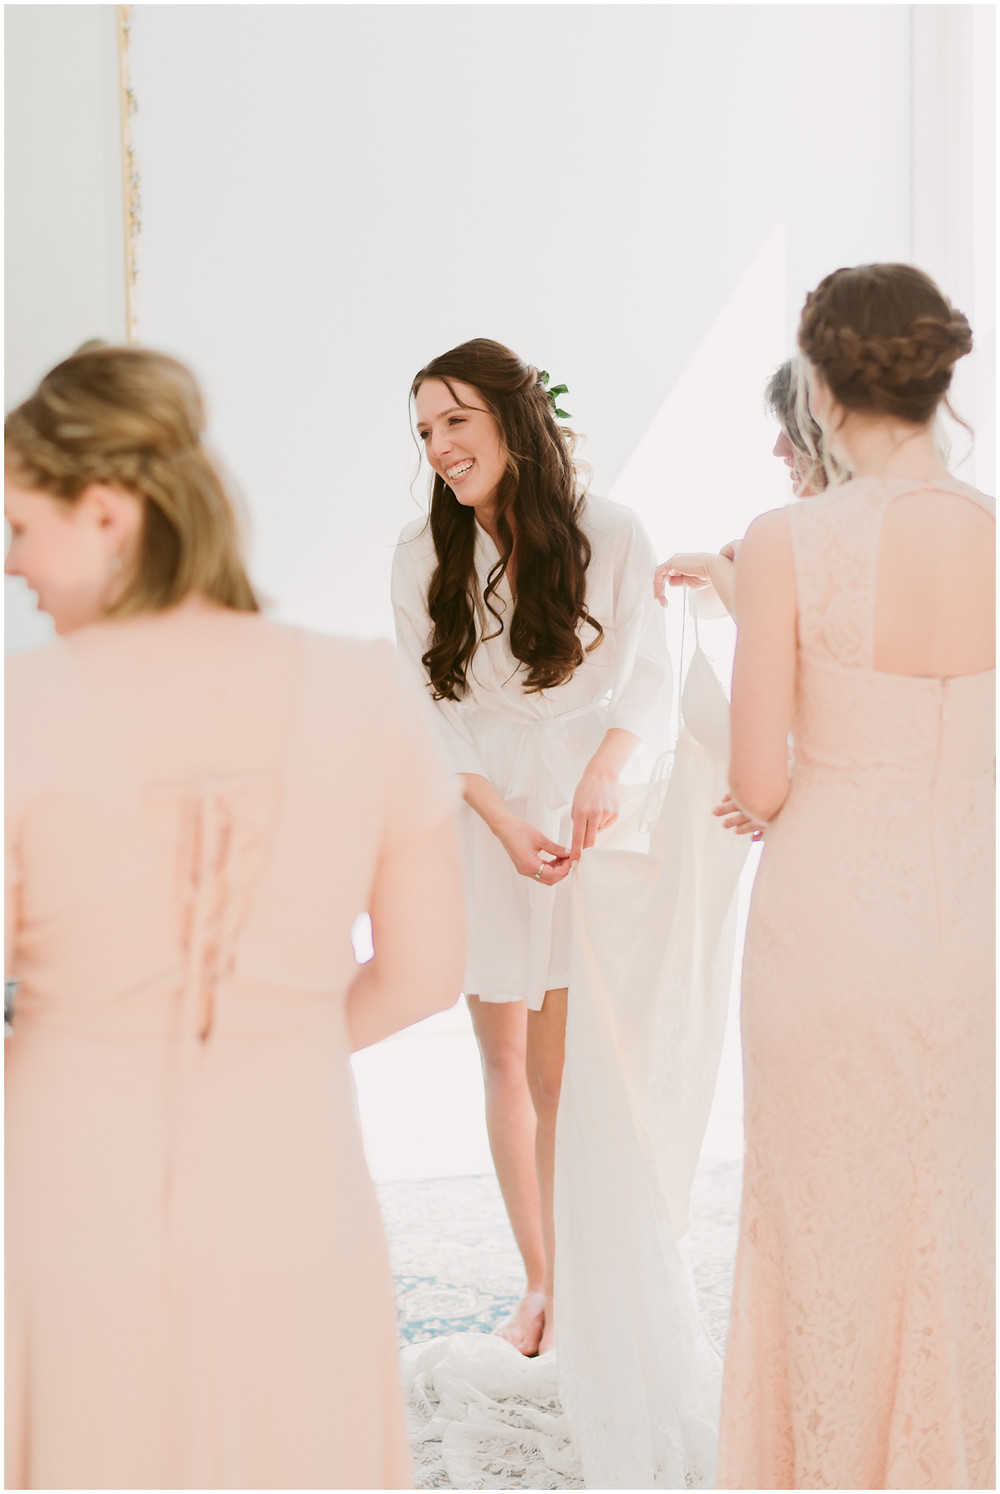 Light and airy spring time wedding at the Takk House in Troy, NY by Mountainaire Gatherings